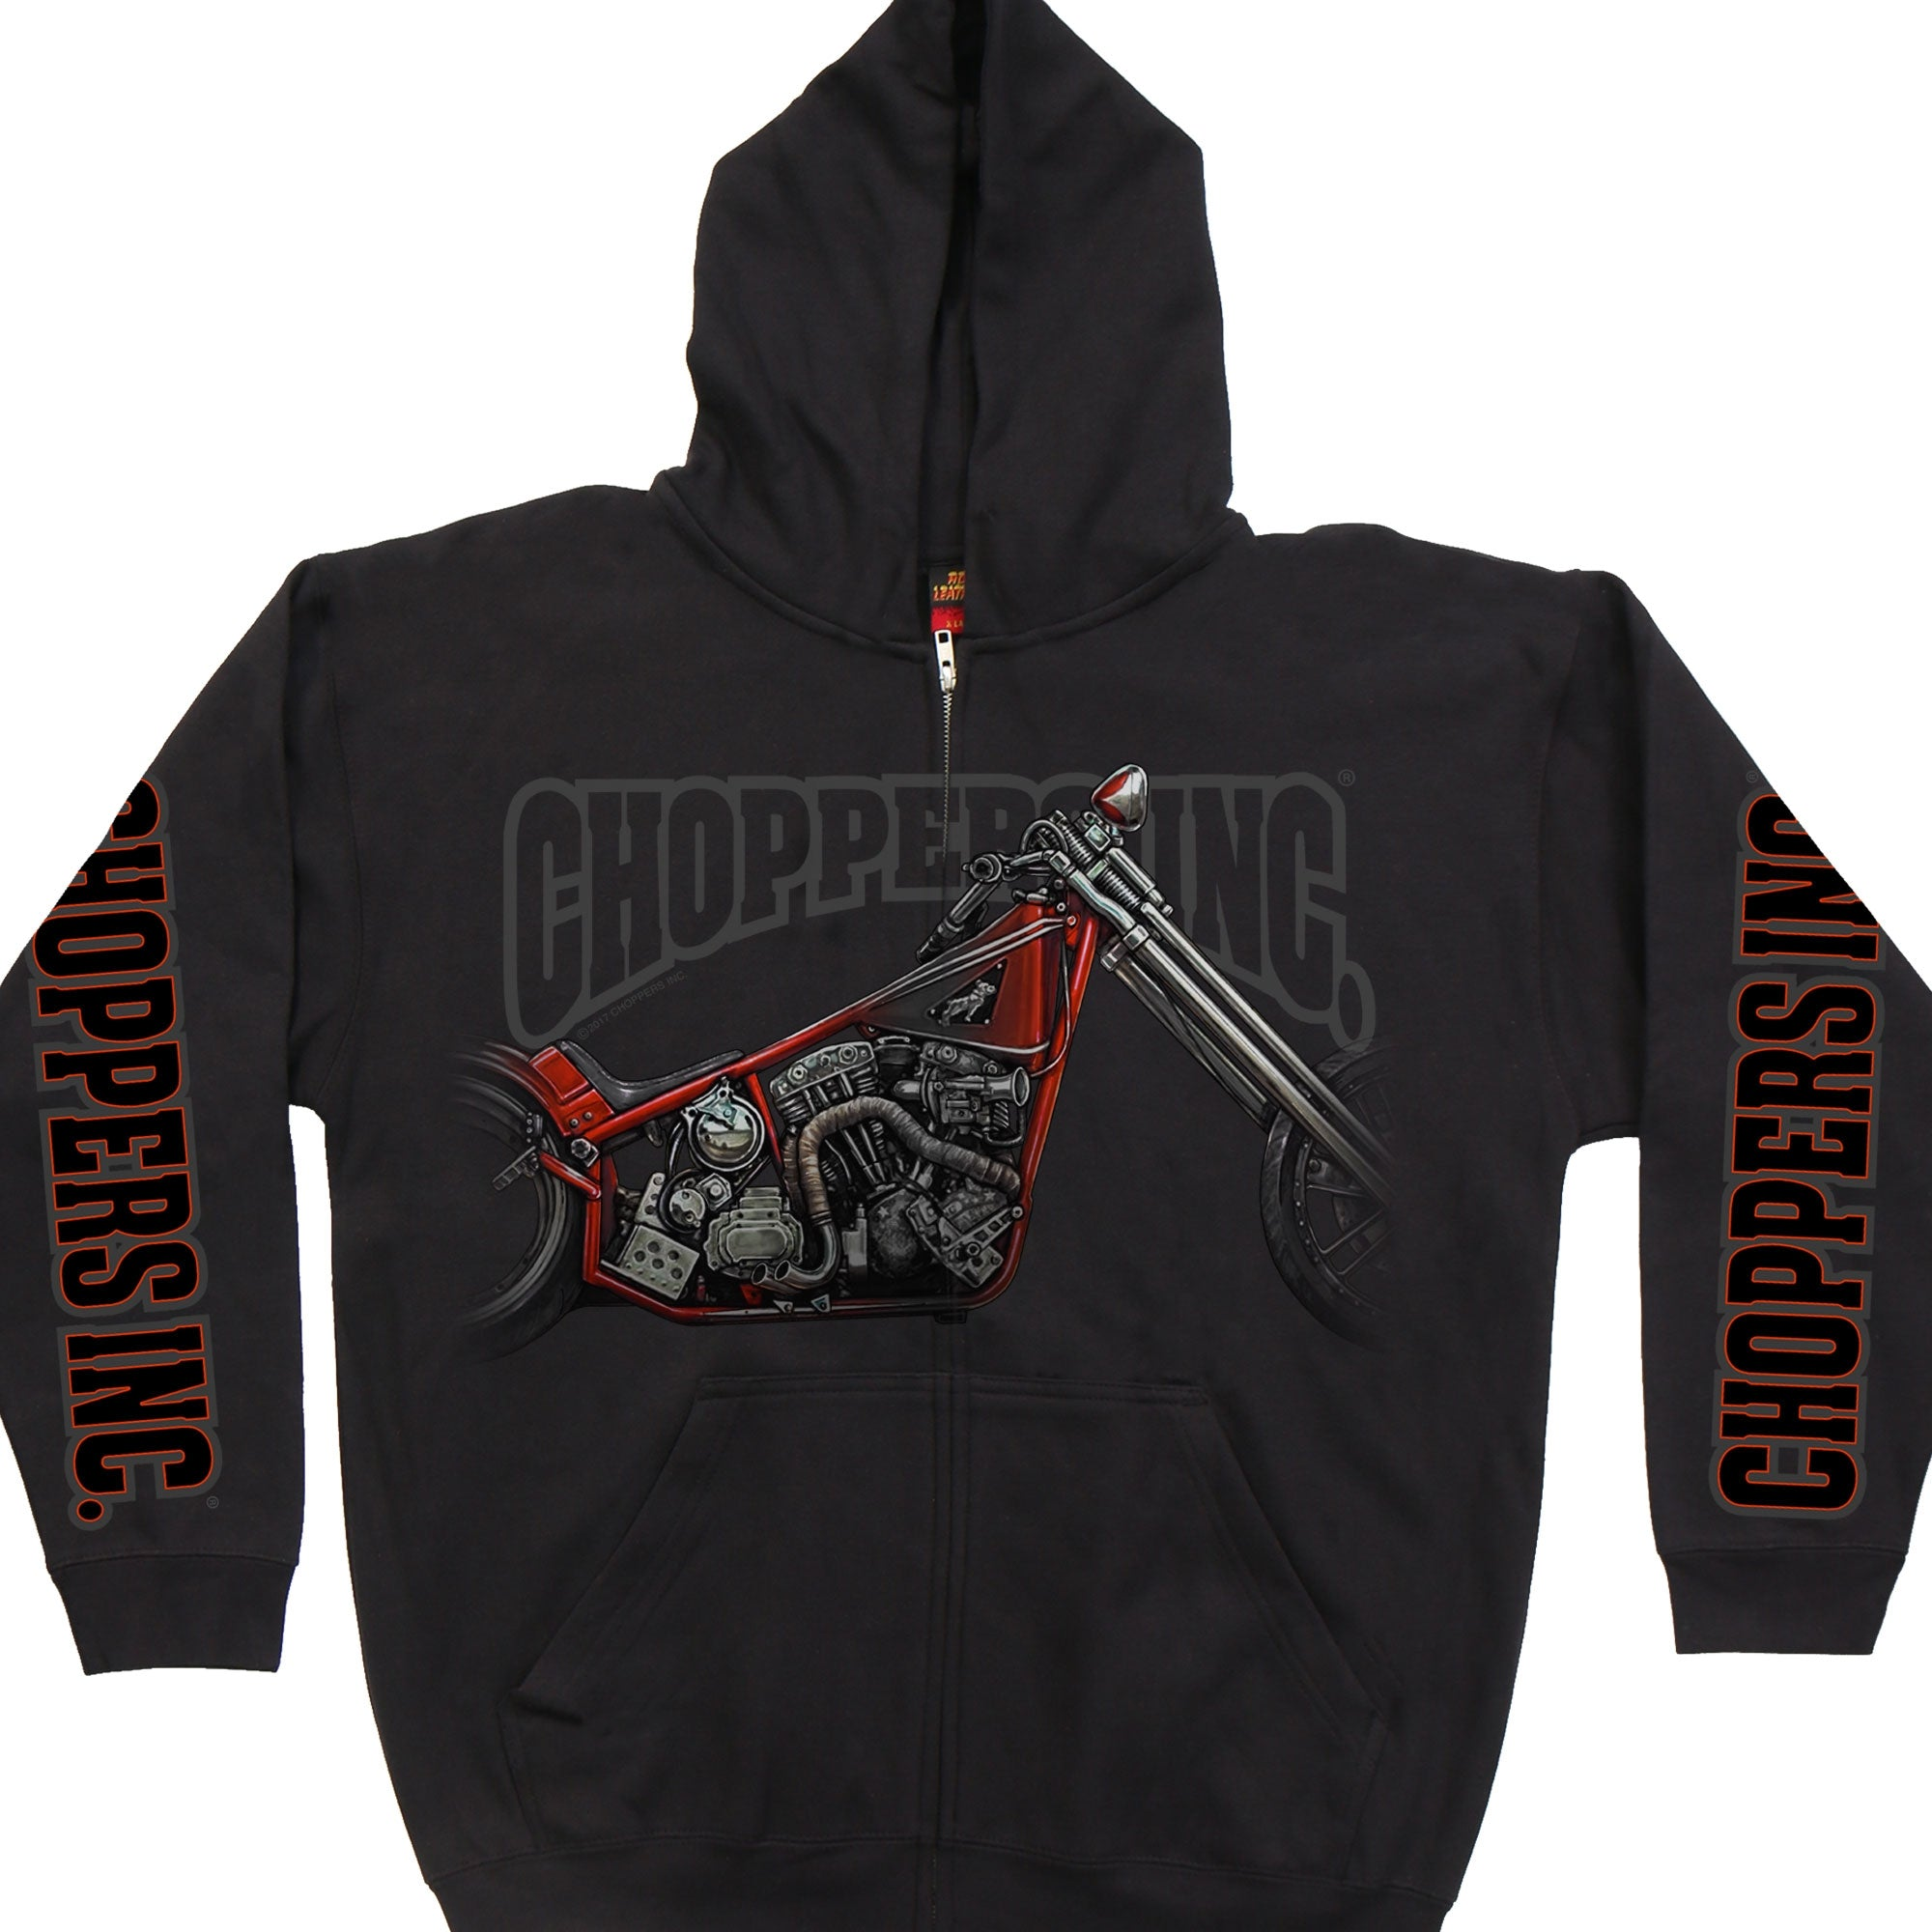 Official Billy Lane's Choppers Inc Hubless Chopper Hooded Sweatshirt